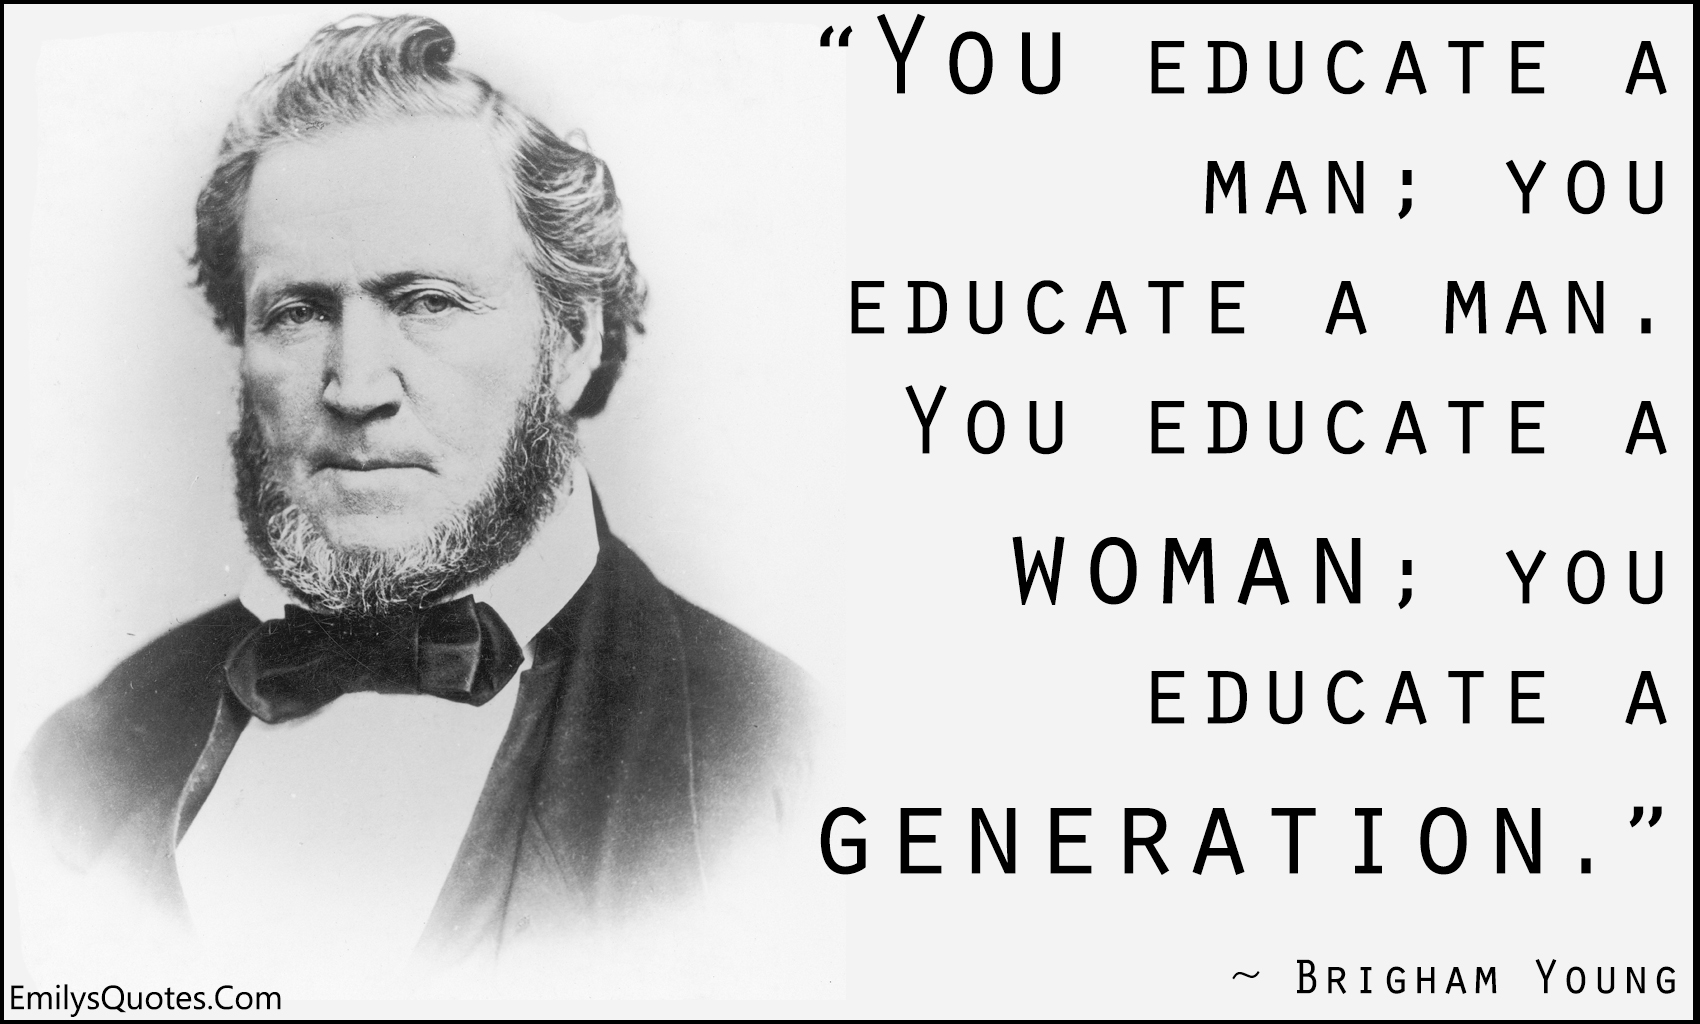 Quotes For Women You Educate A Man You Educate A Manyou Educate A Woman You